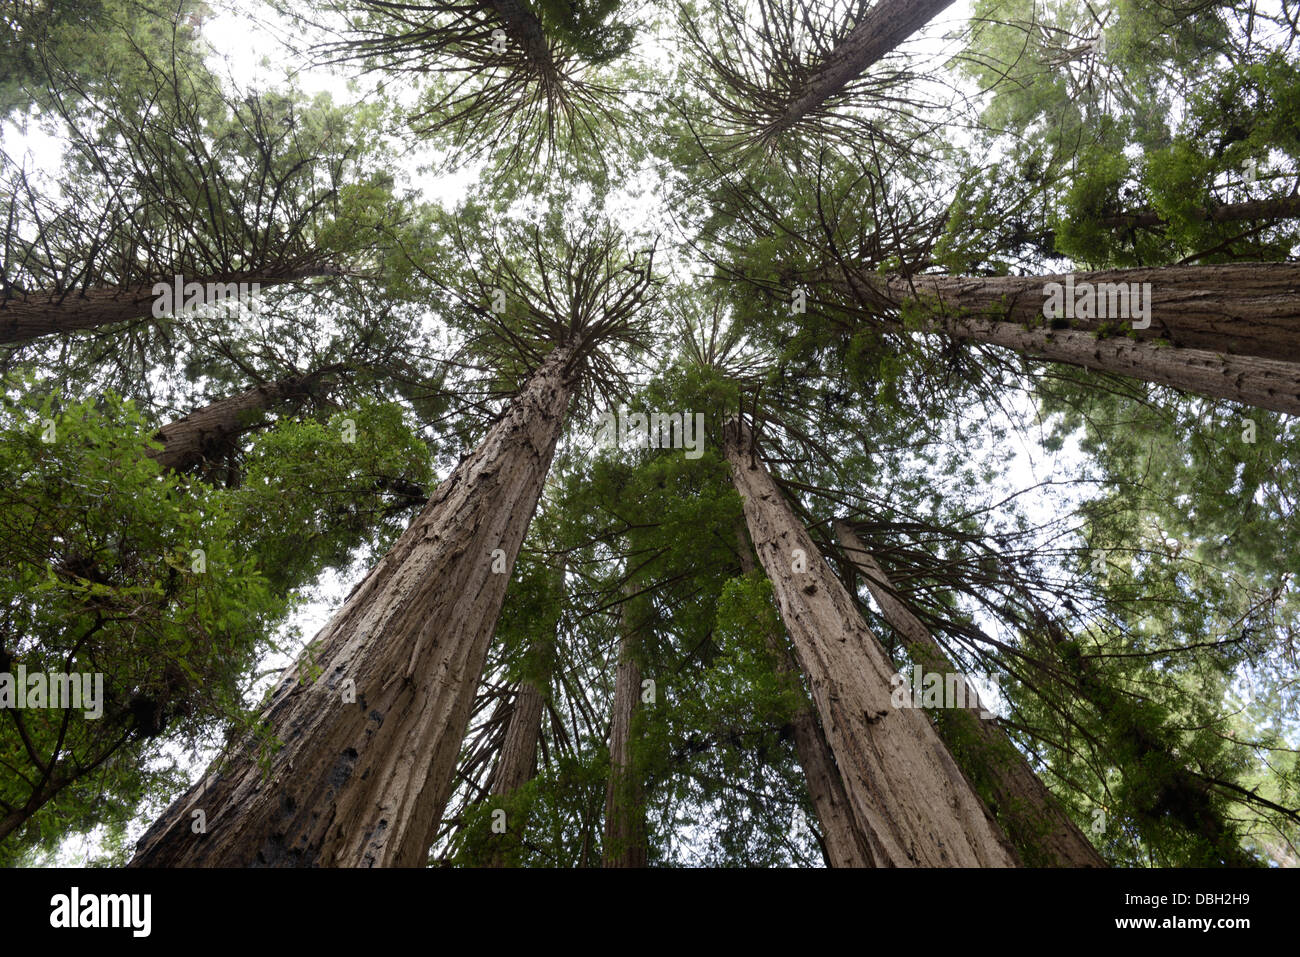 Coast Redwood grove, Sequoia sempervirens, from below, Muir Woods, northern CA - Stock Image